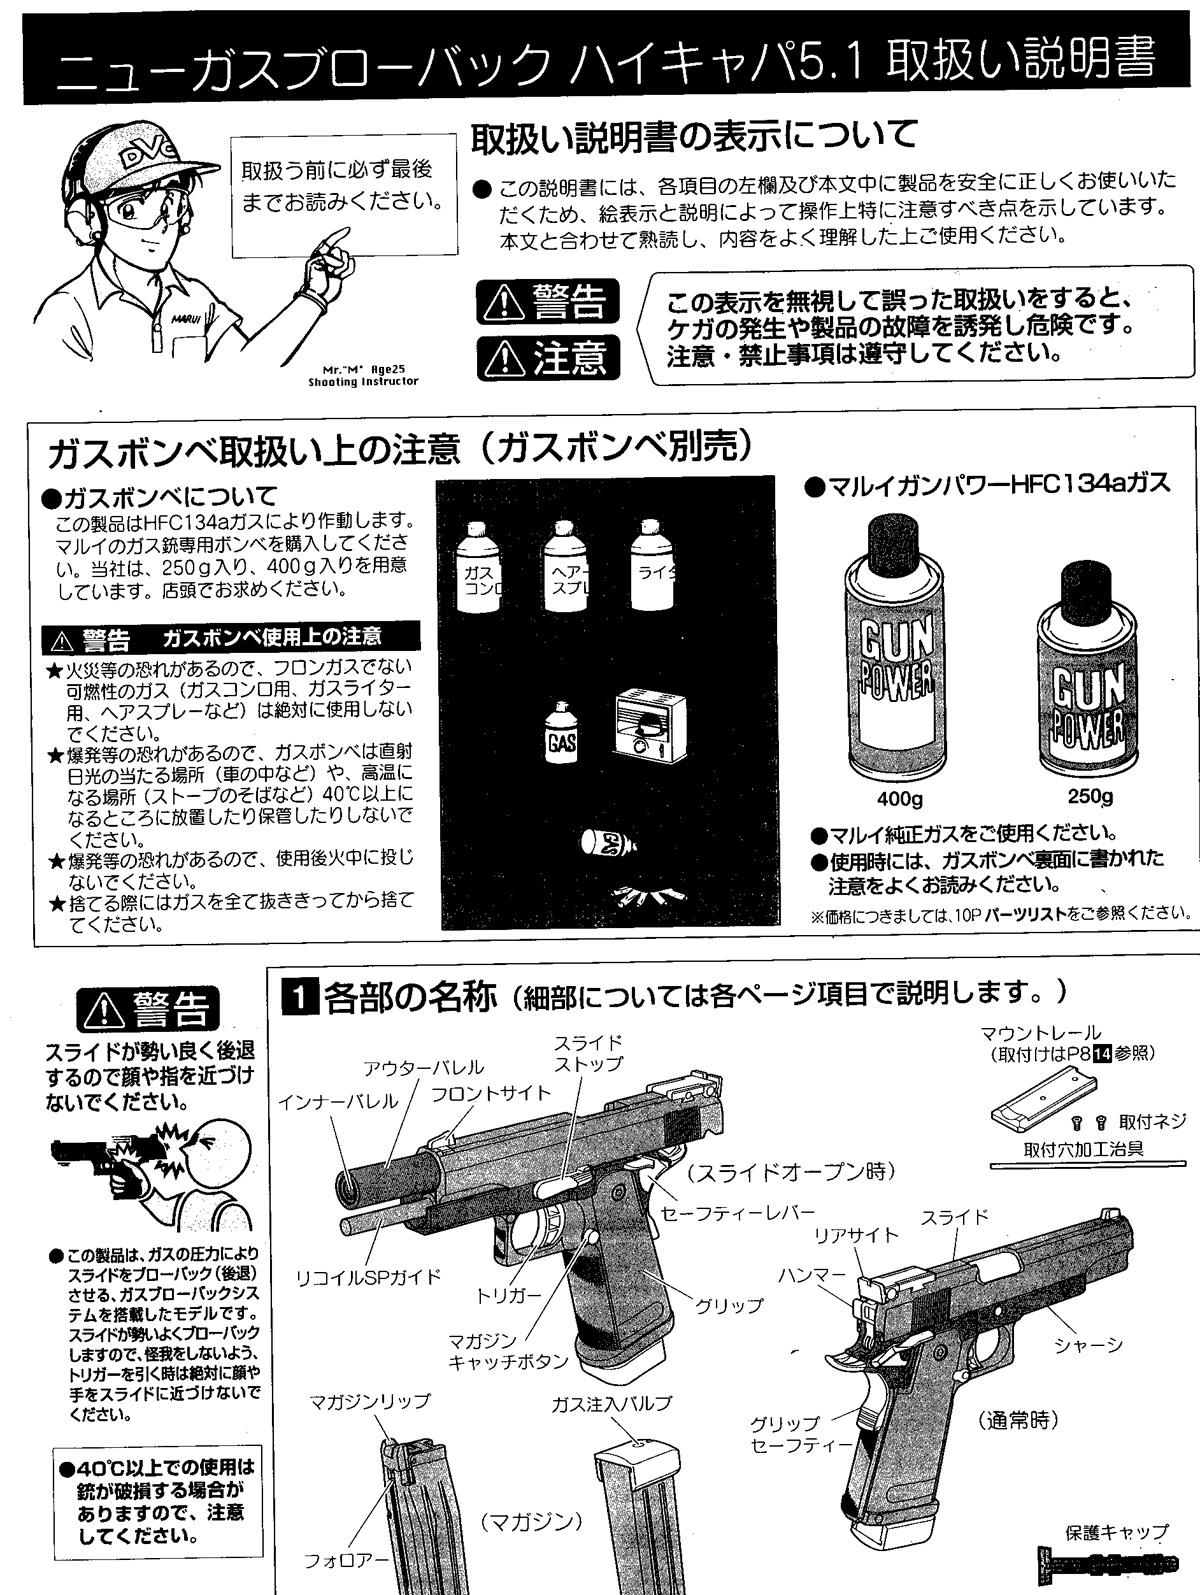 Tm Manuals Hydraulic Schematics Schematic M983 W O Array Free Download Manual For Tokyo Marui Hi Capa Gas Blowback Gun Rh